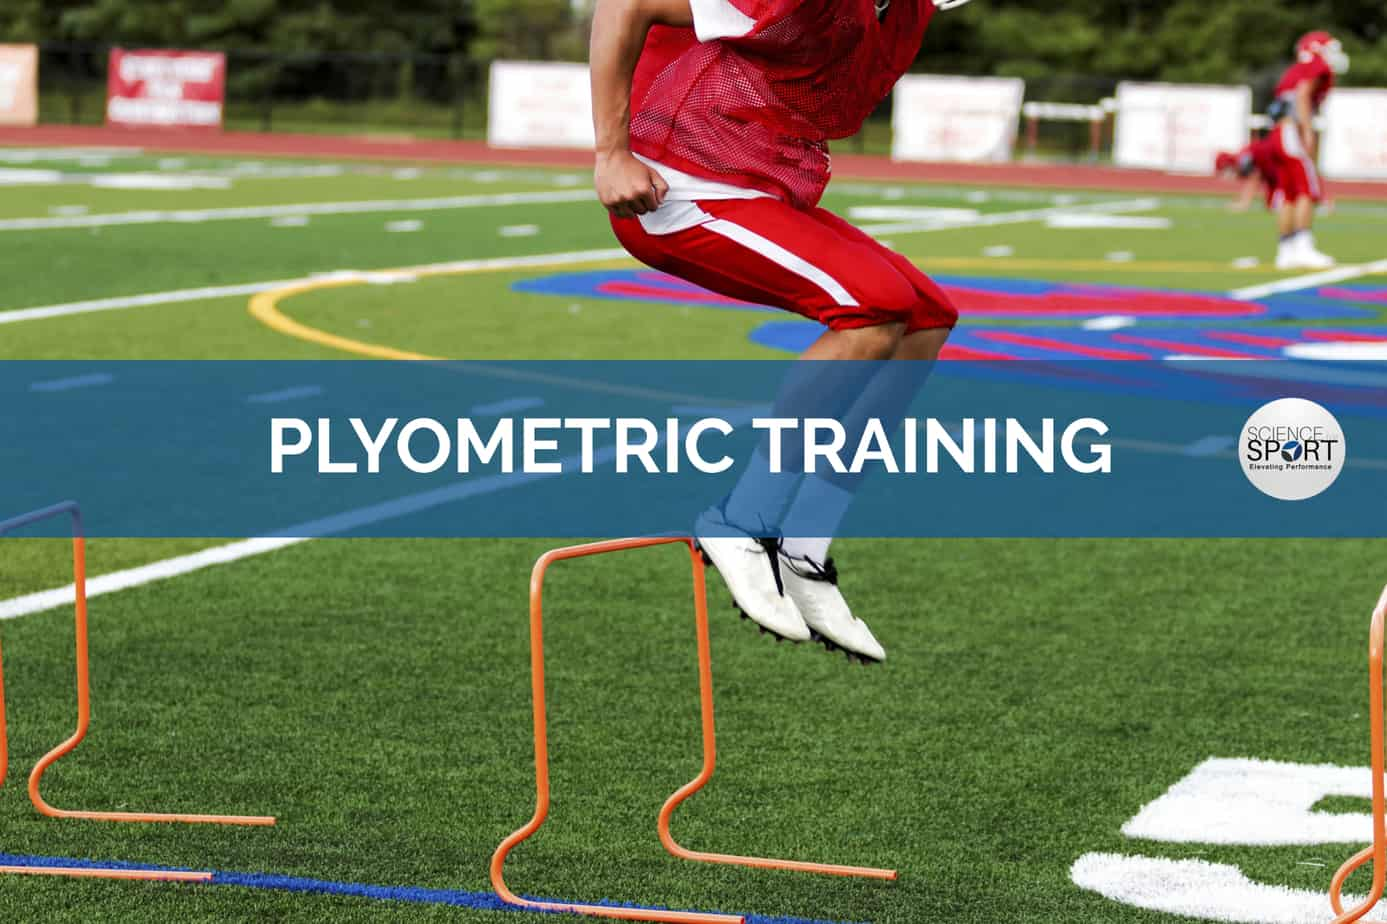 Plyometric Training - Science For Sport